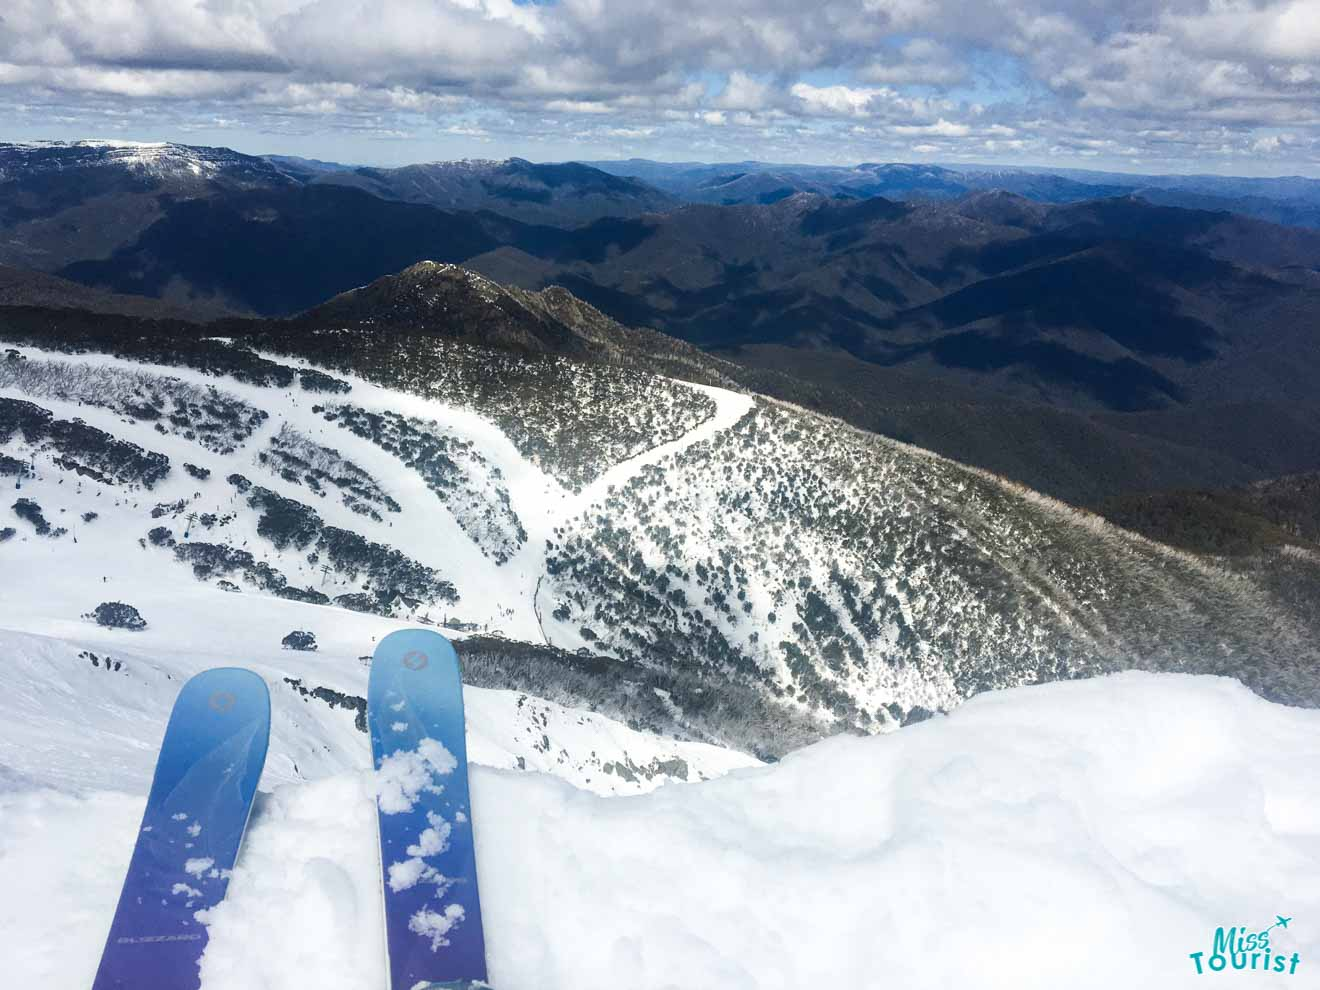 mount hotham snowboarding - Skis Mt Buller or Mt Hotham